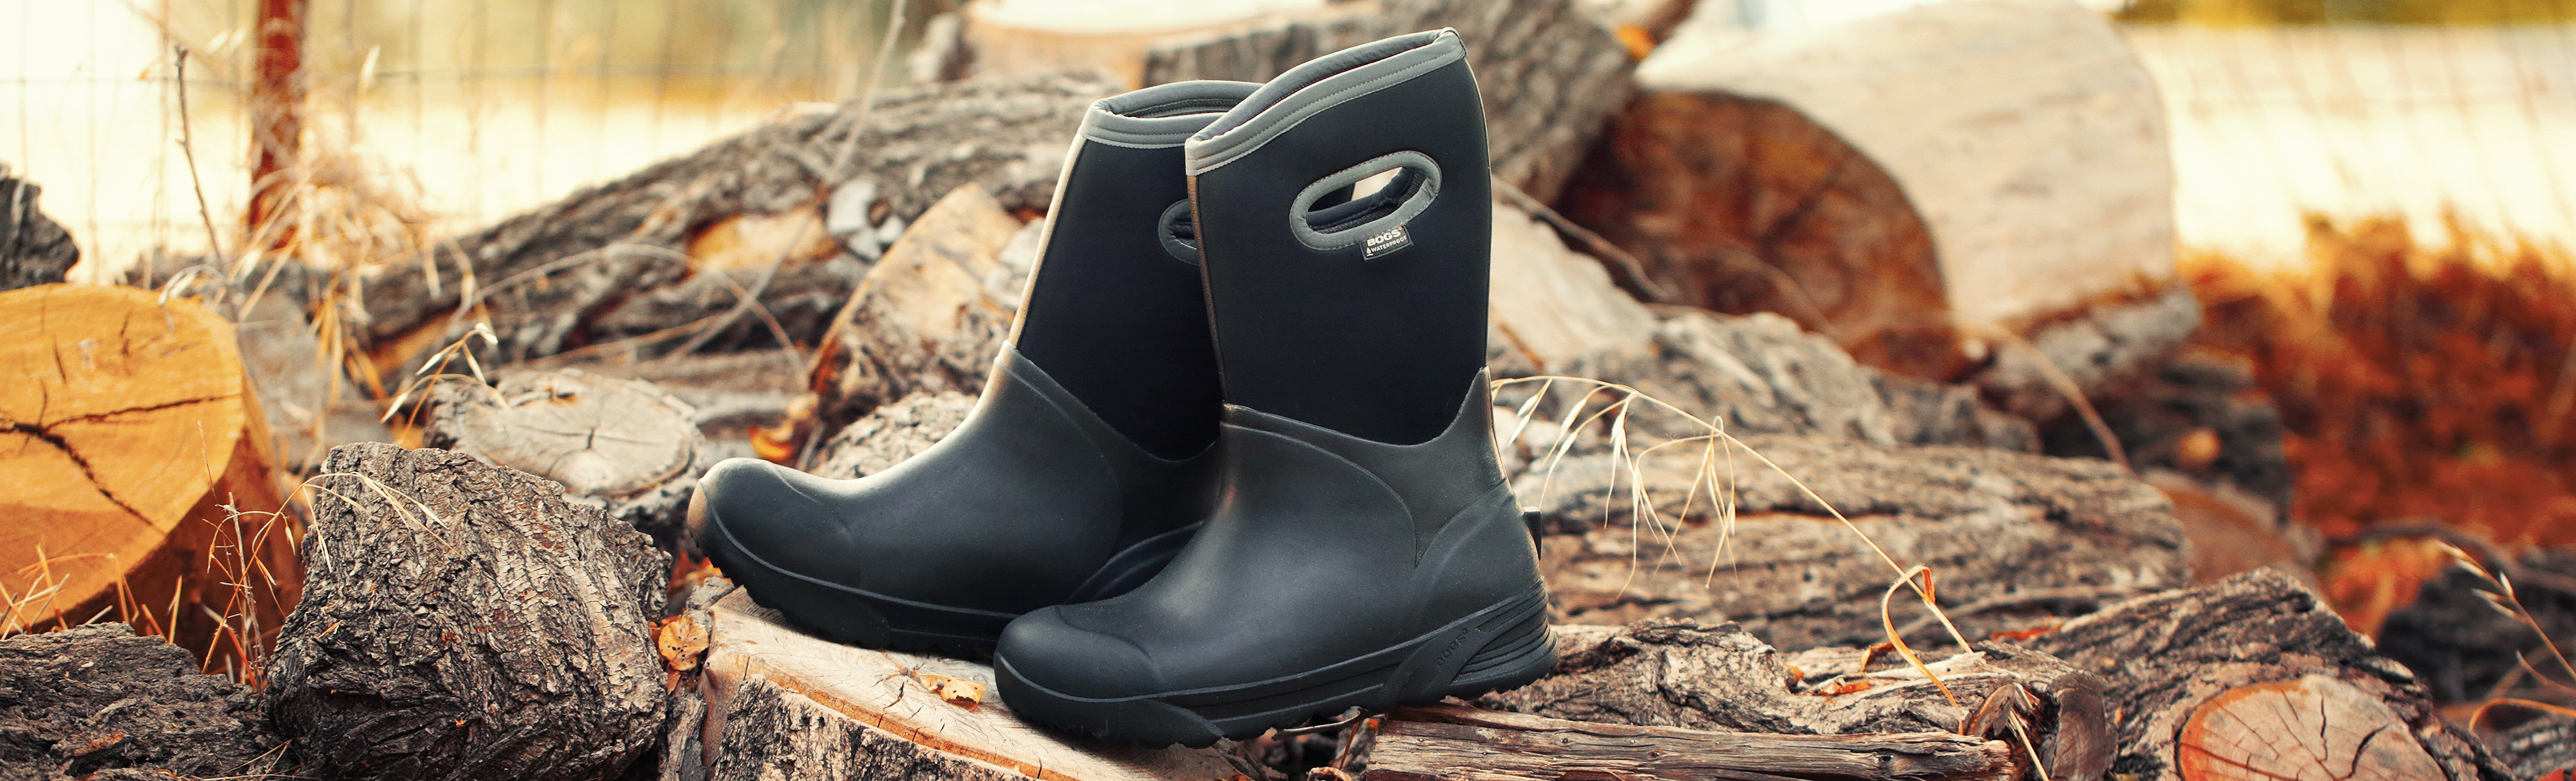 Massdrop x Bogs Bozeman Cool Tech Tall Boots